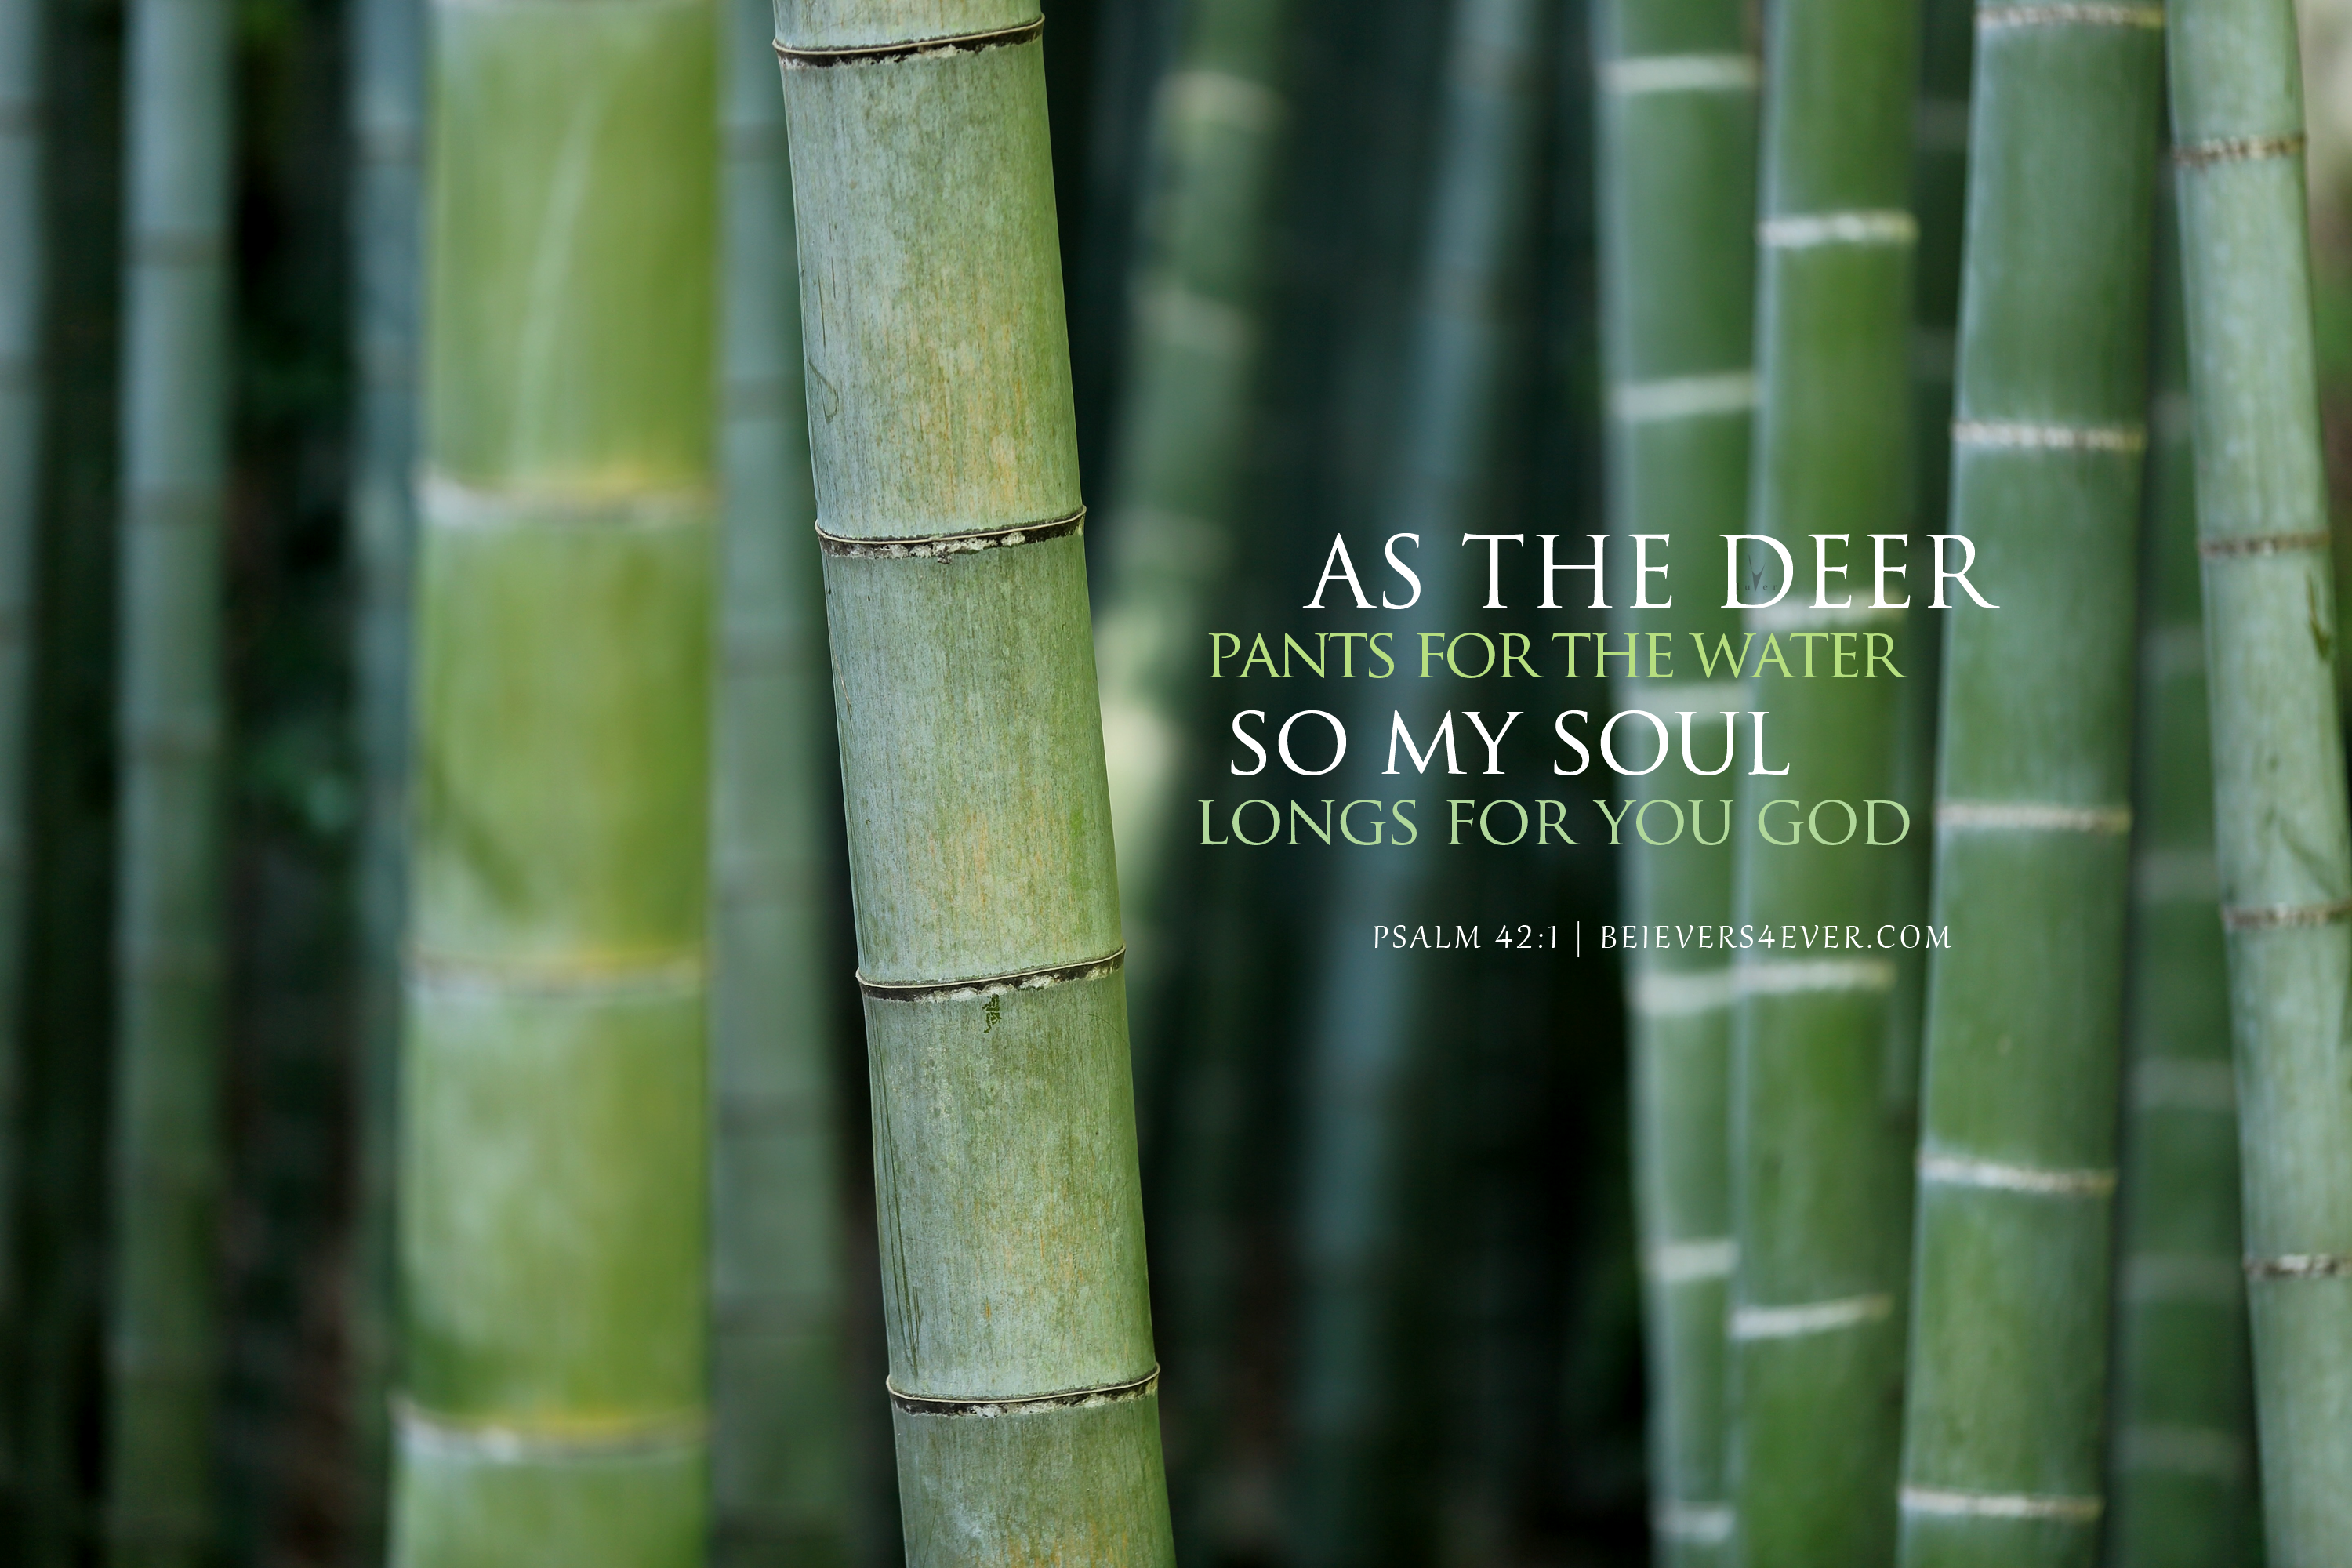 As the deer pants for the water so my soul longs for you God. Psalm 42:1Christian wallpaper featuring bible verse scripture. Free to download for personal & non-commercial Church use